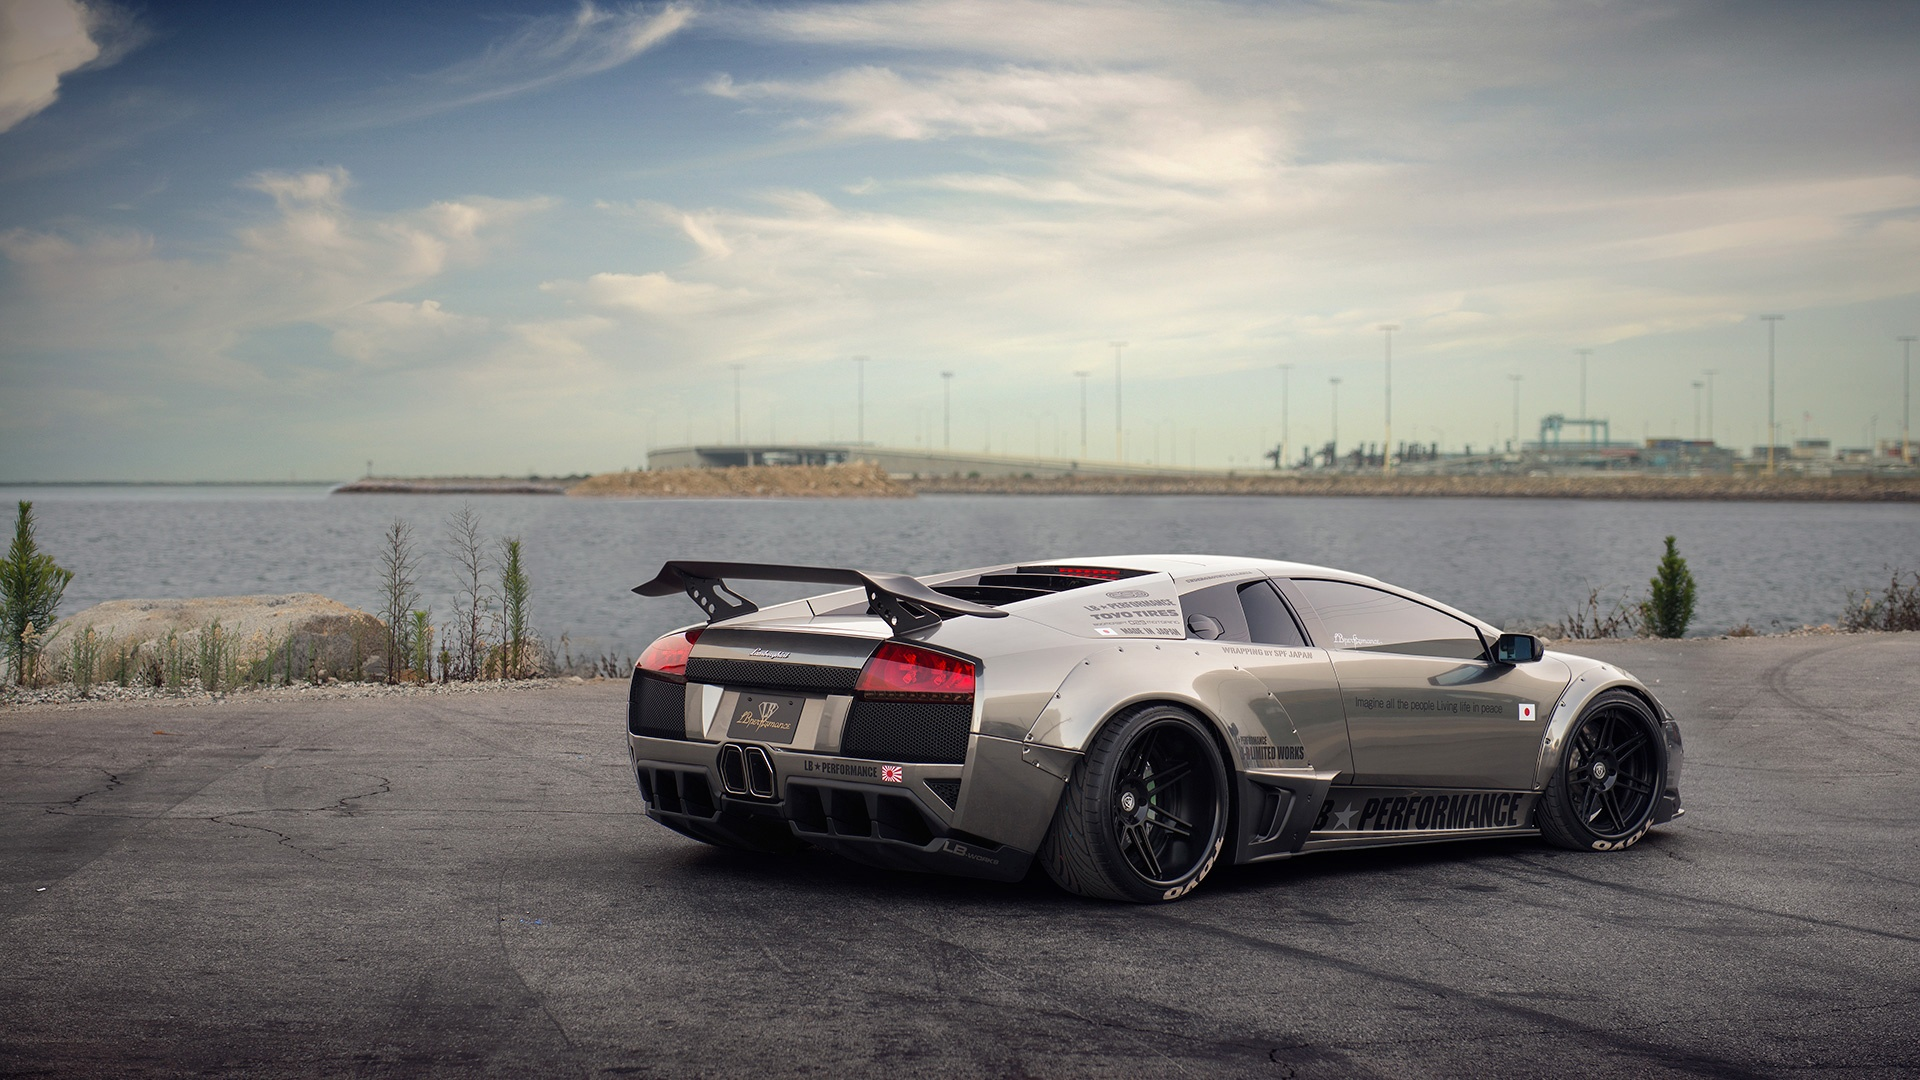 Lamborghini aventador wallpapers pictures images - Luxury car hd wallpaper download ...